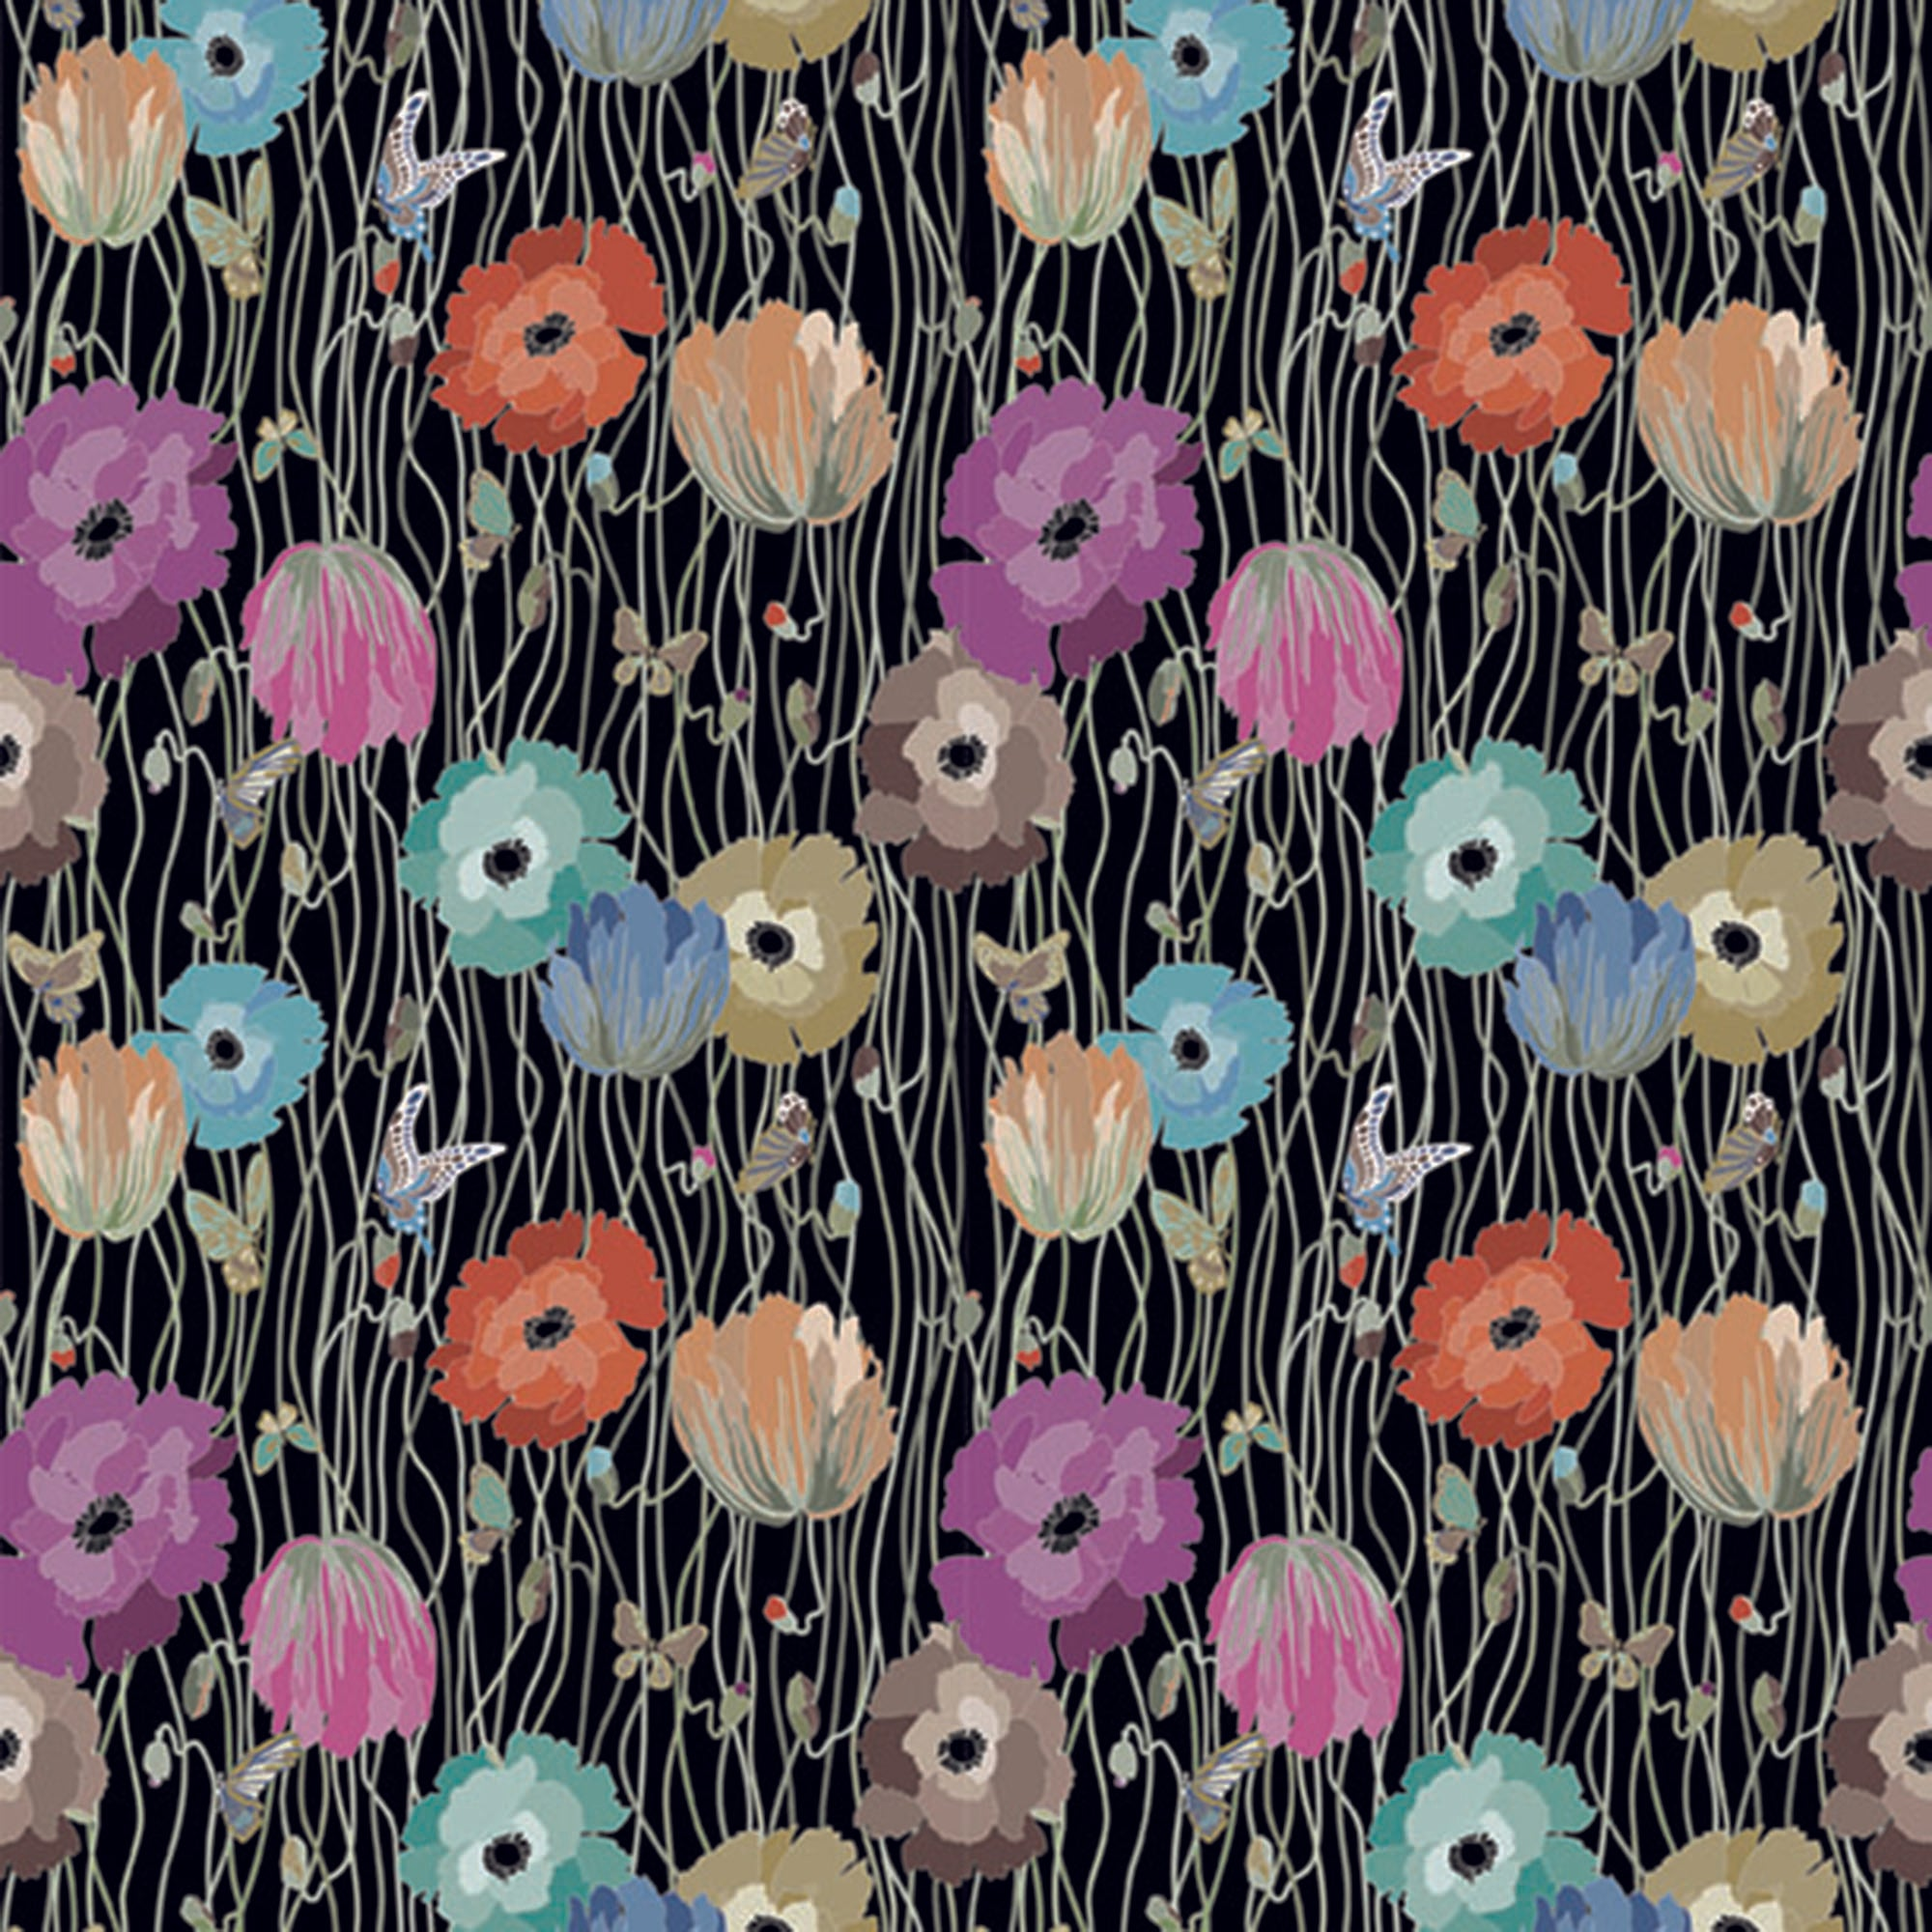 Large, Blue, Purple, Pink, Cyan, Orange And Yellow Flowers On A Vine And Black Wood Grain Background. 10195, Poppies Night